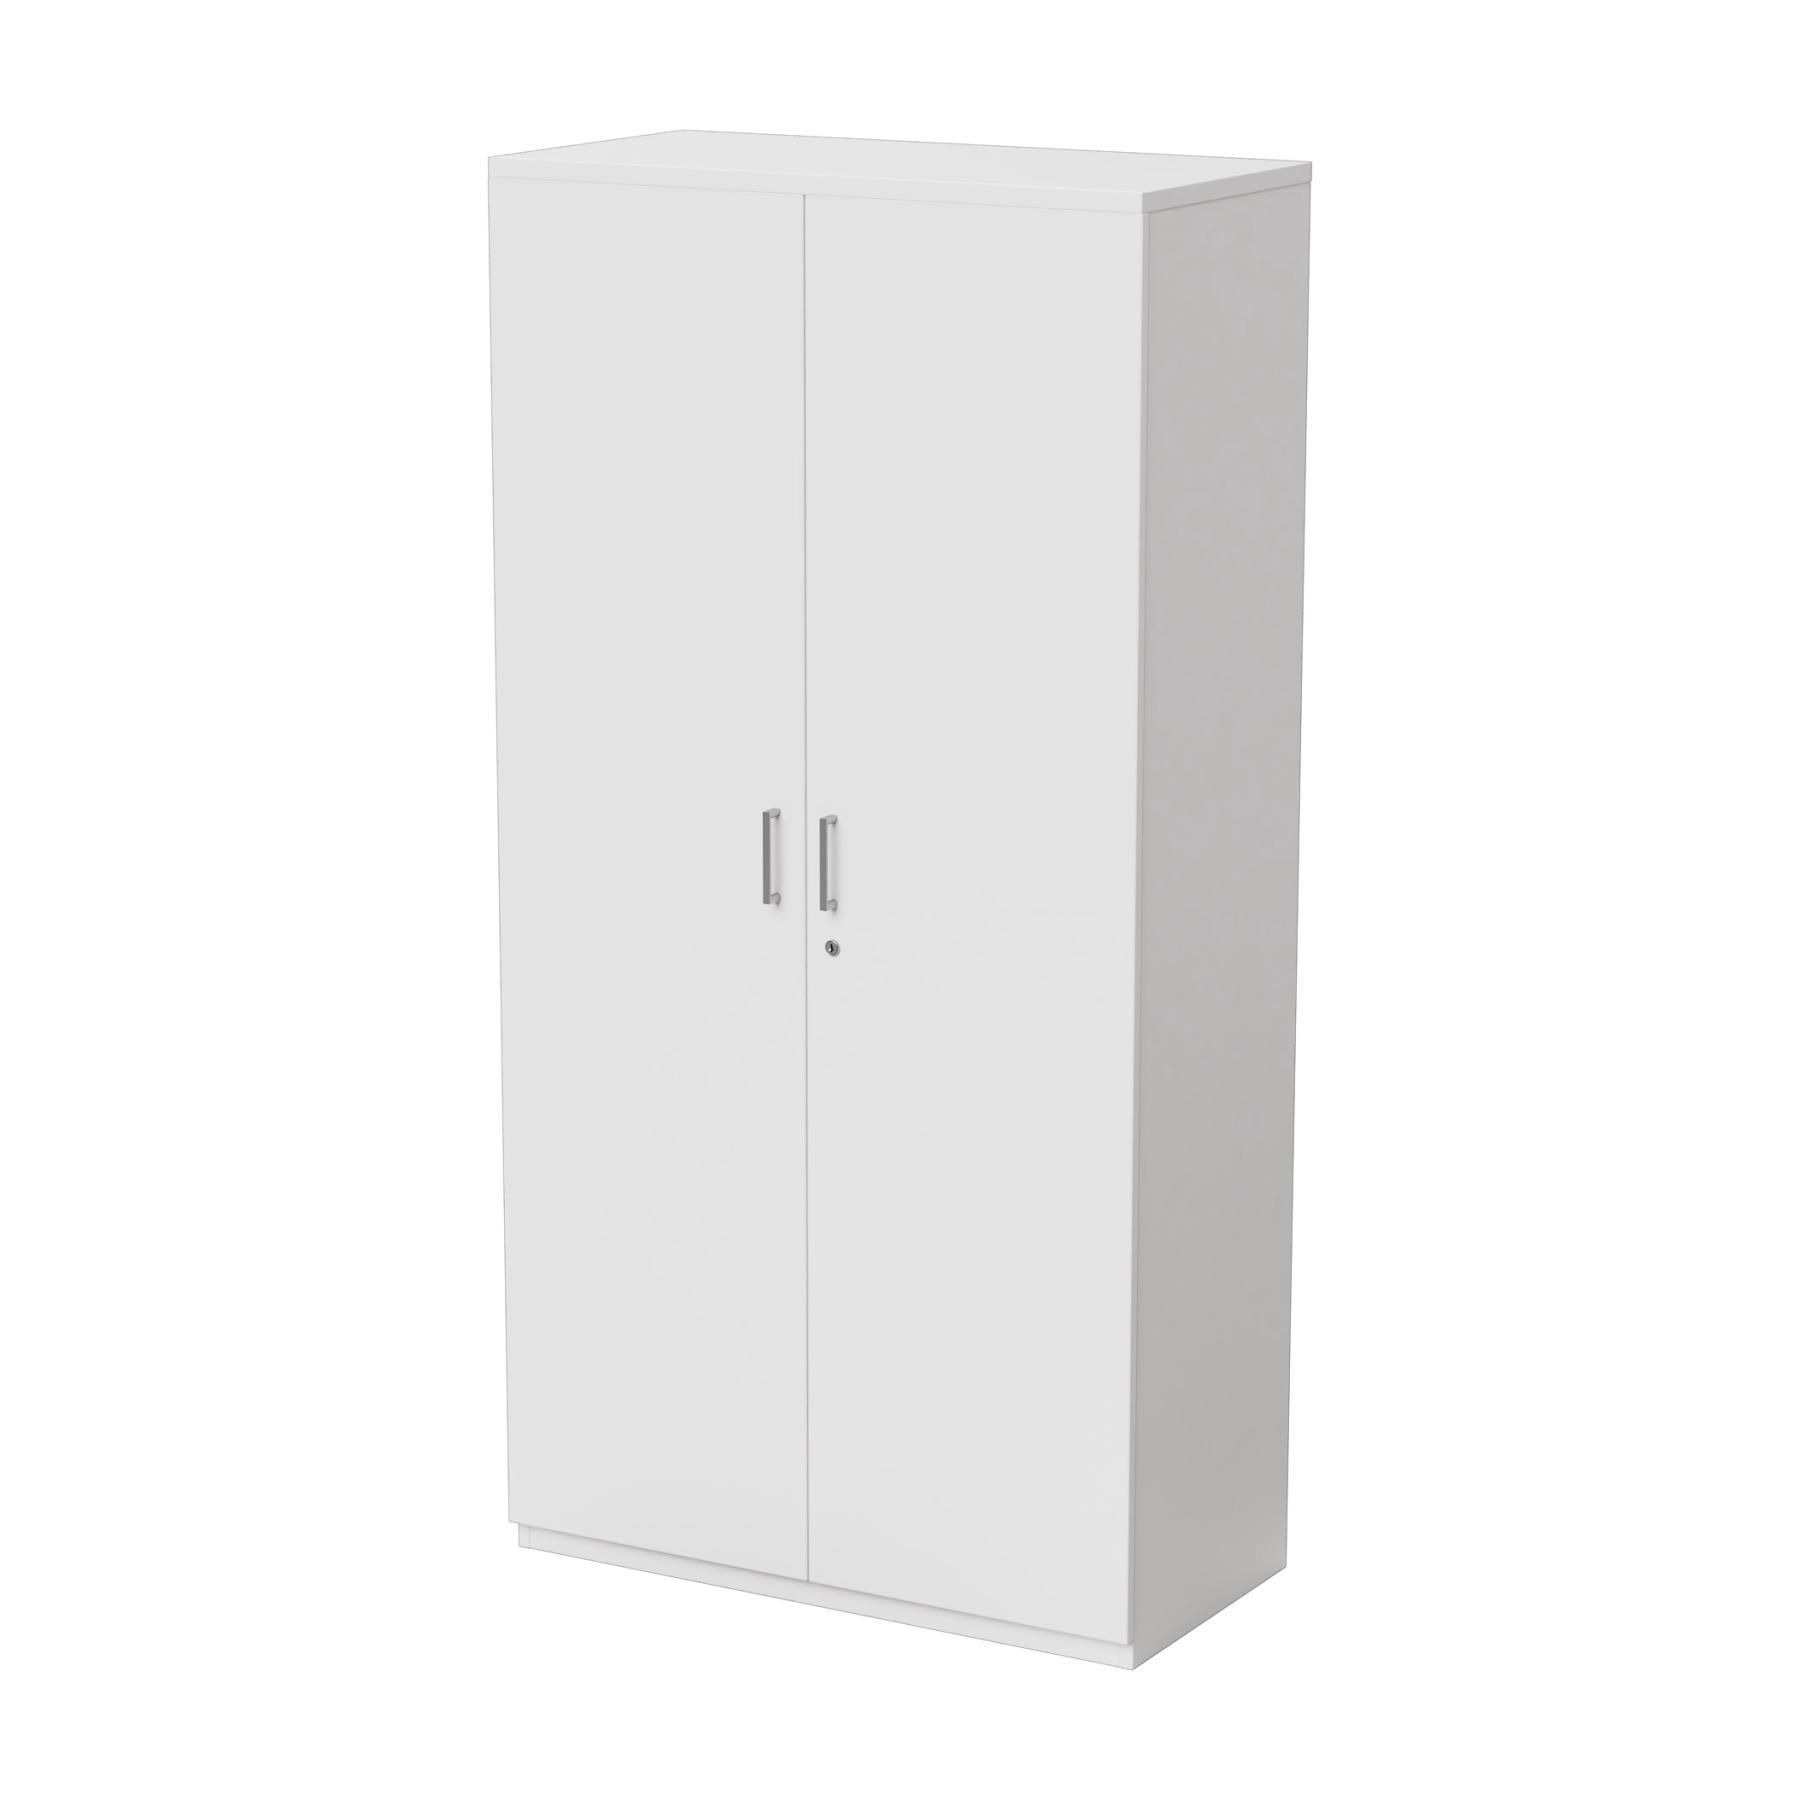 Lami Storage Cupboard – 900 Wide